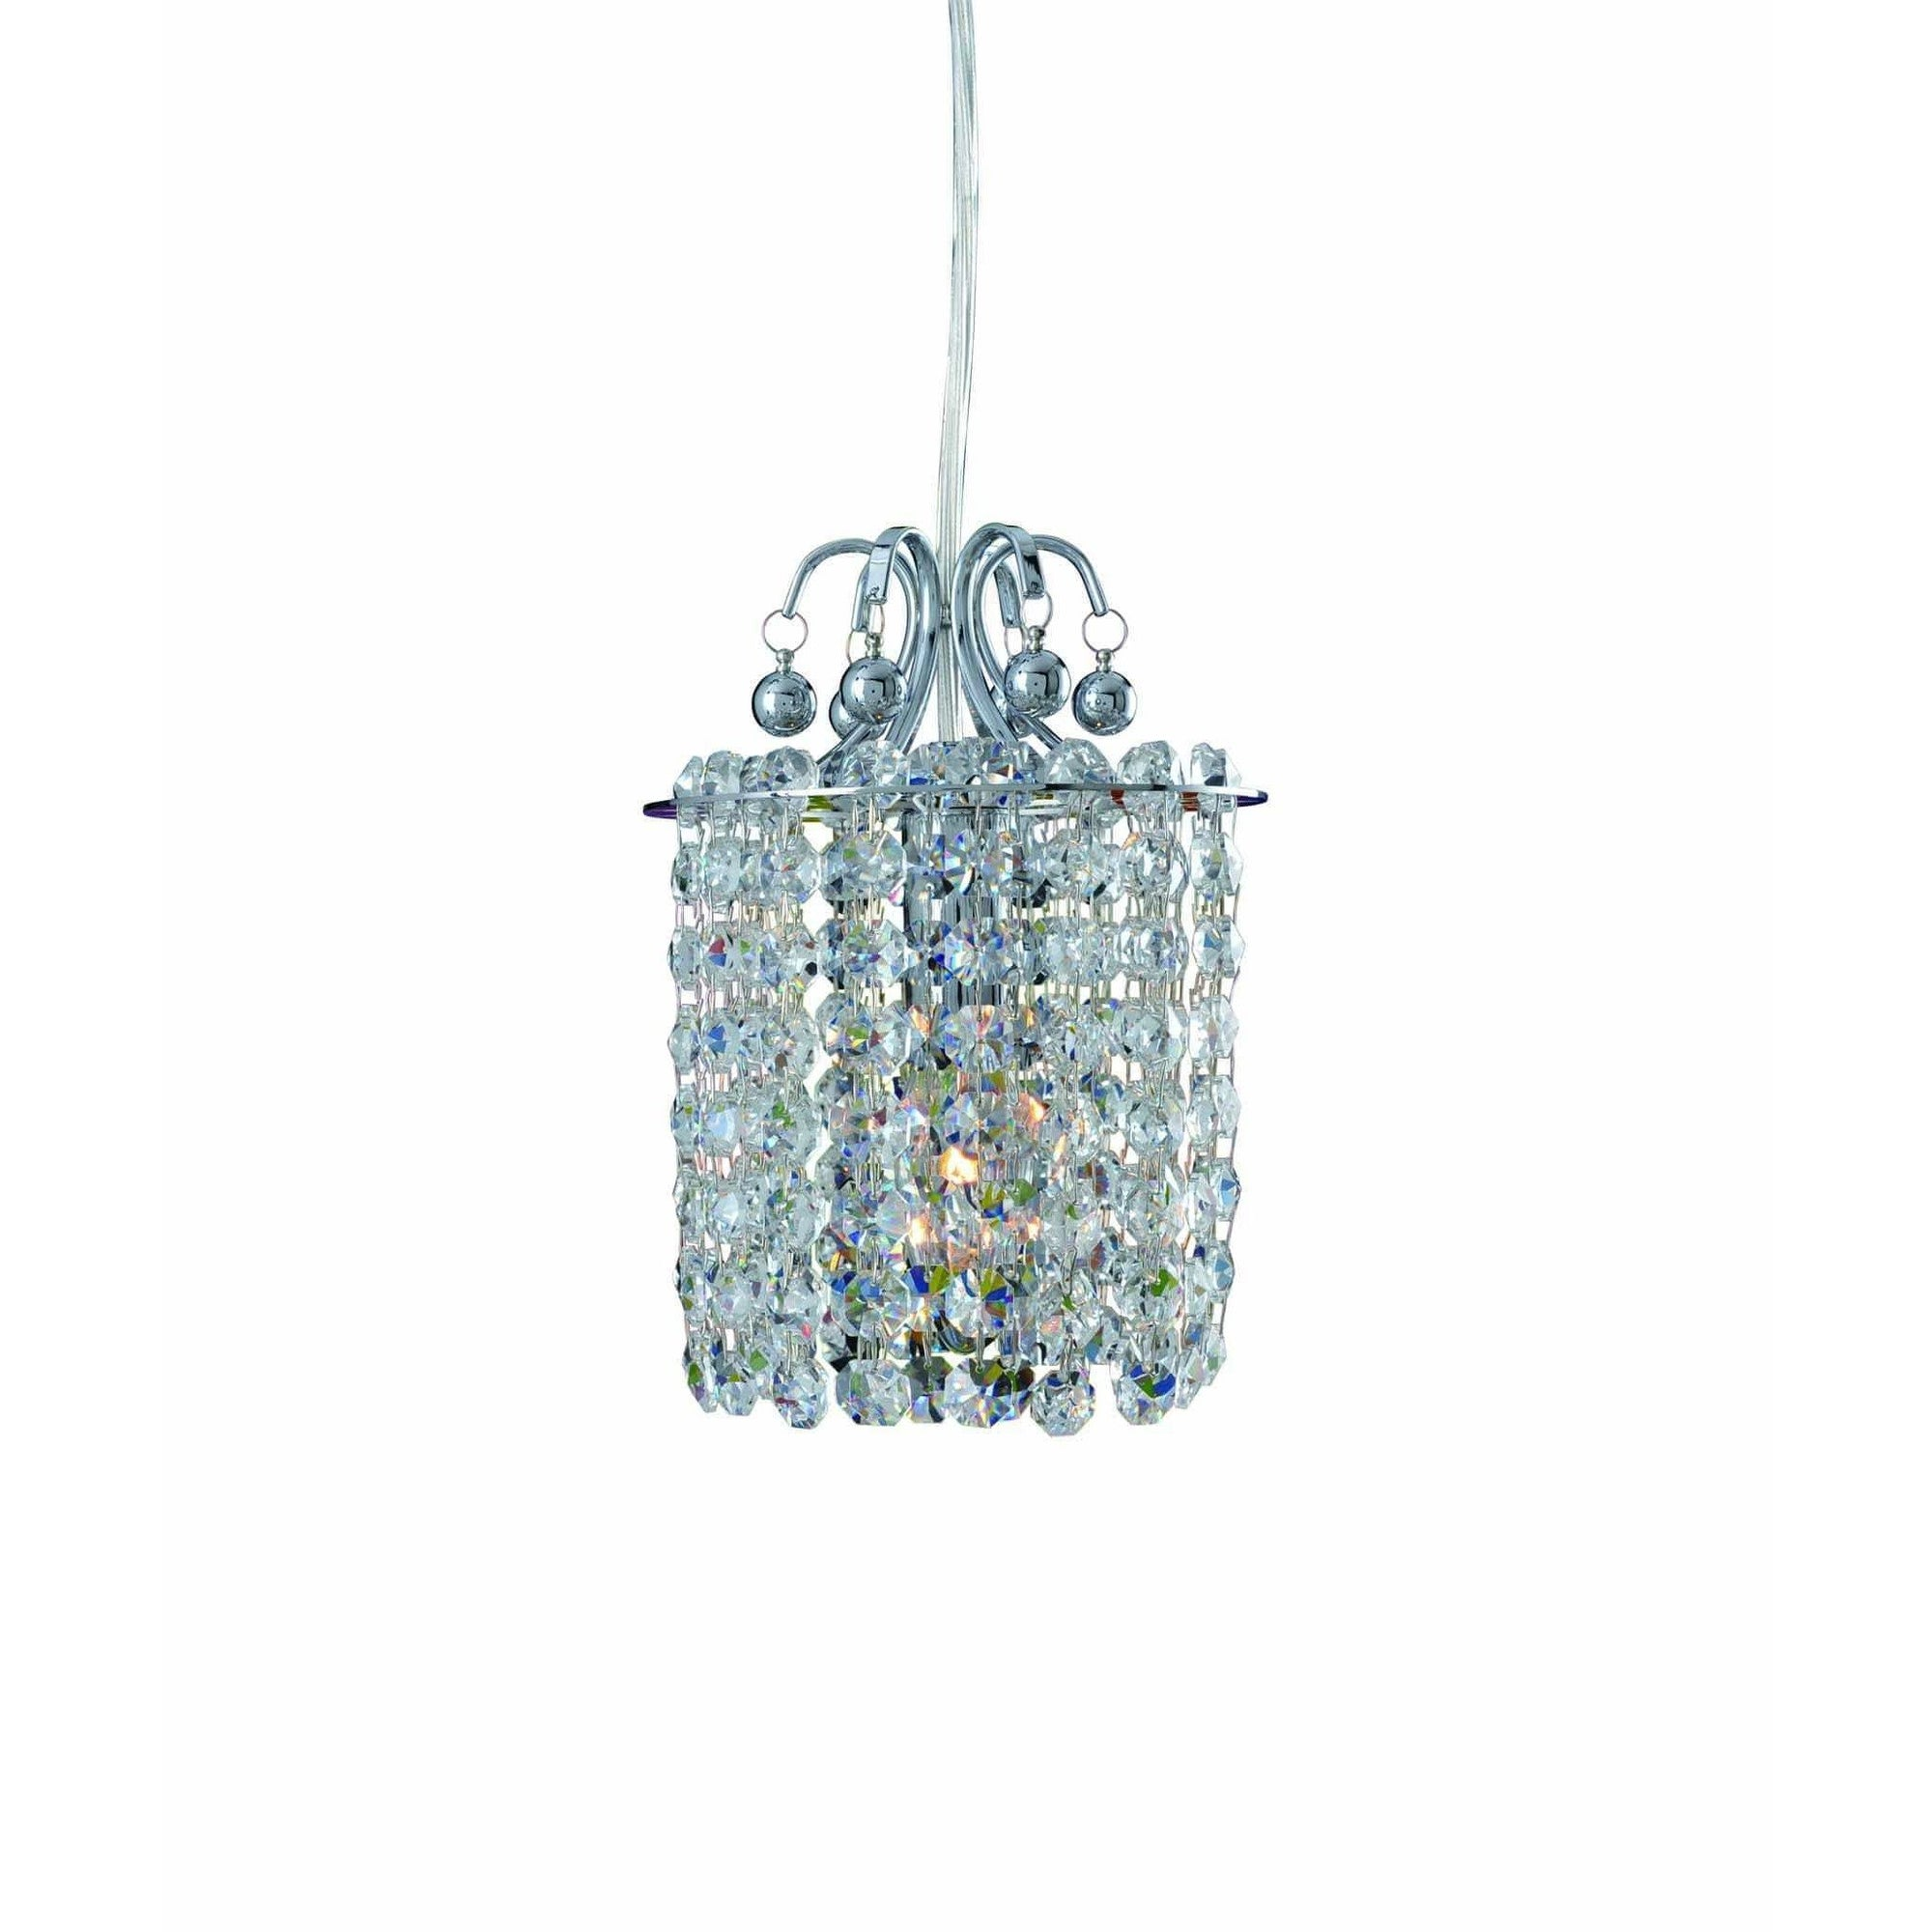 Allegri by Kalco Lighting Pendants Chrome / Firenze Clear Rondelle 47 Inch 3 Tier Pendant From Allegri by Kalco Lighting 11770